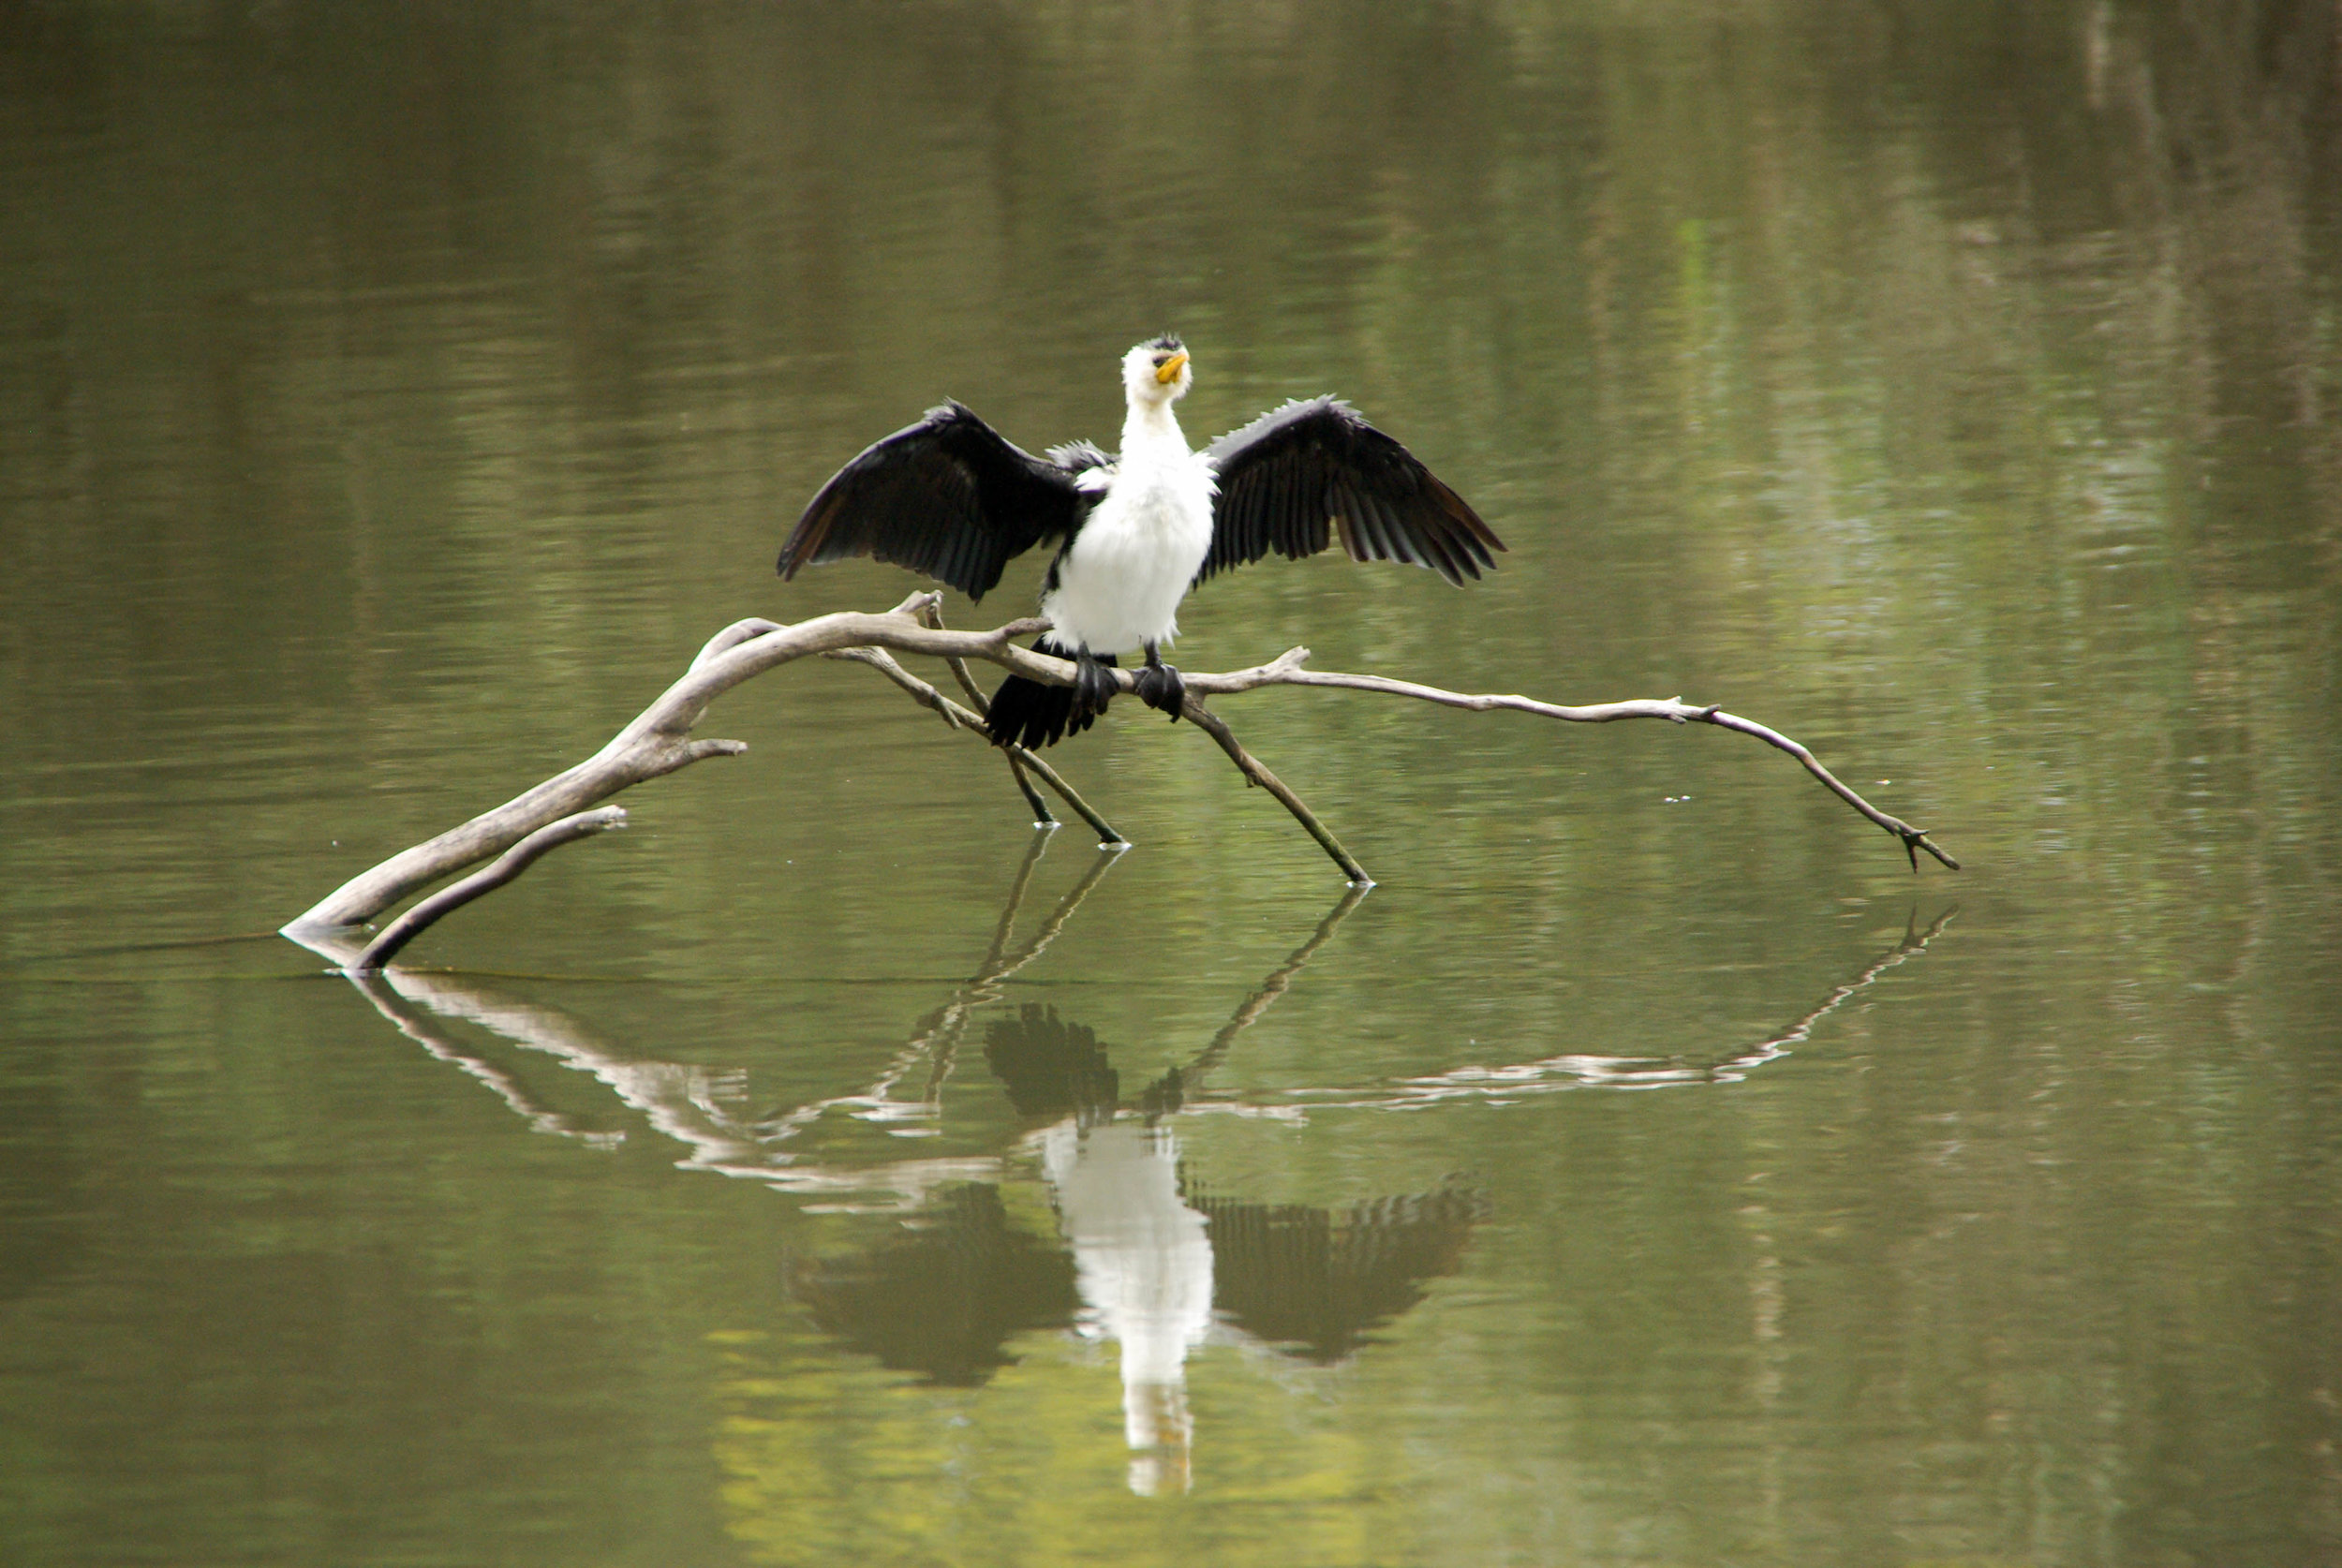 A Little Pied Cormorant dries its wings above the Main Lake.  Image:   Jacinta Humphrey